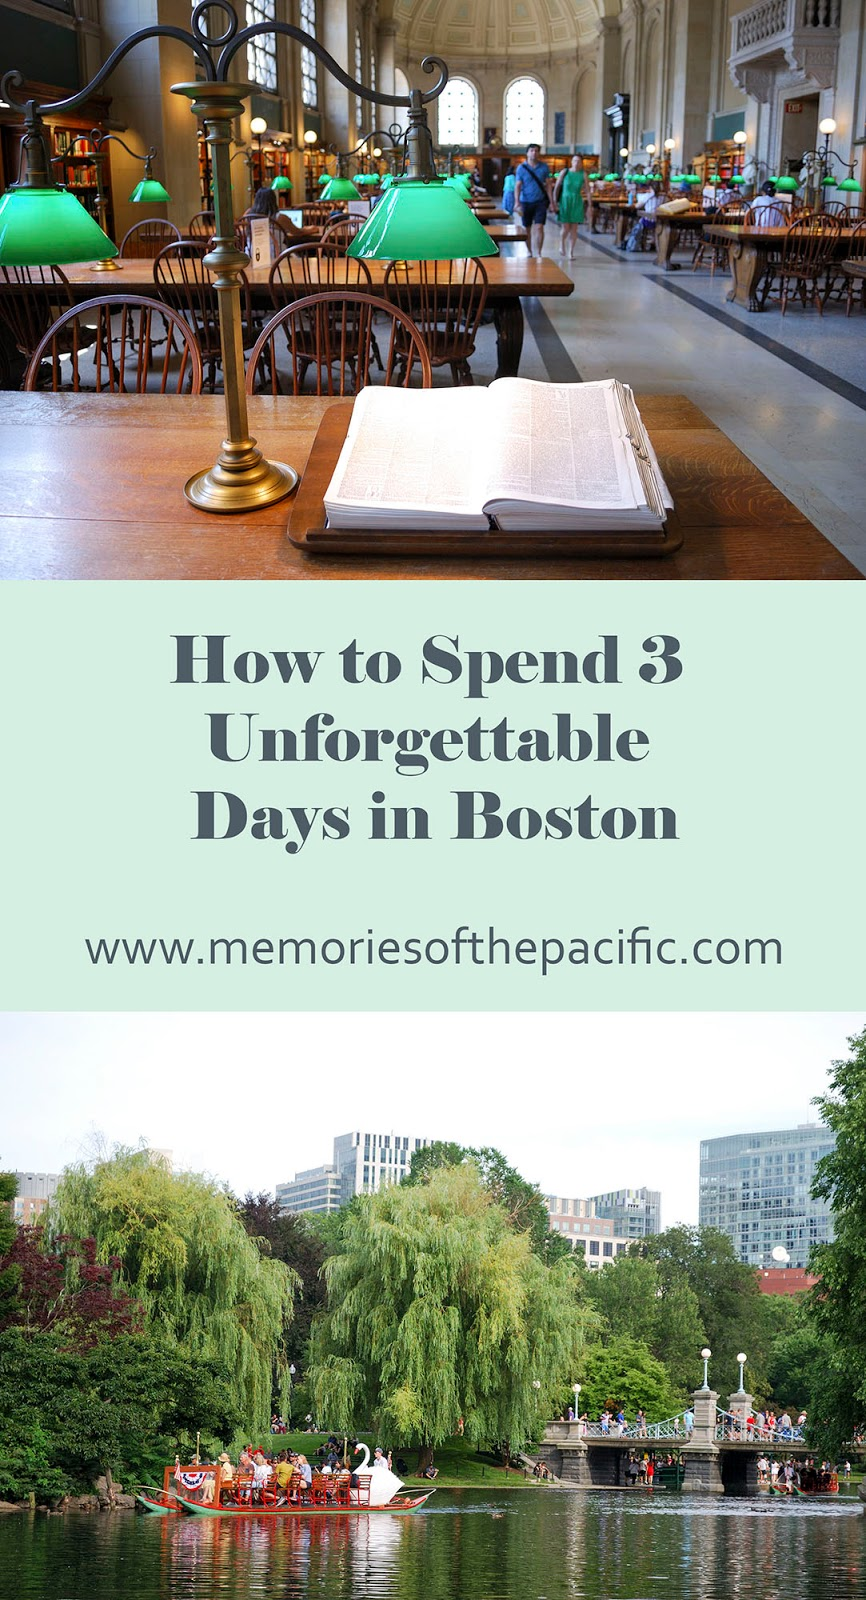 pinneable pinterest boston itinerary plan guide tourism usa america park east coast trip travel